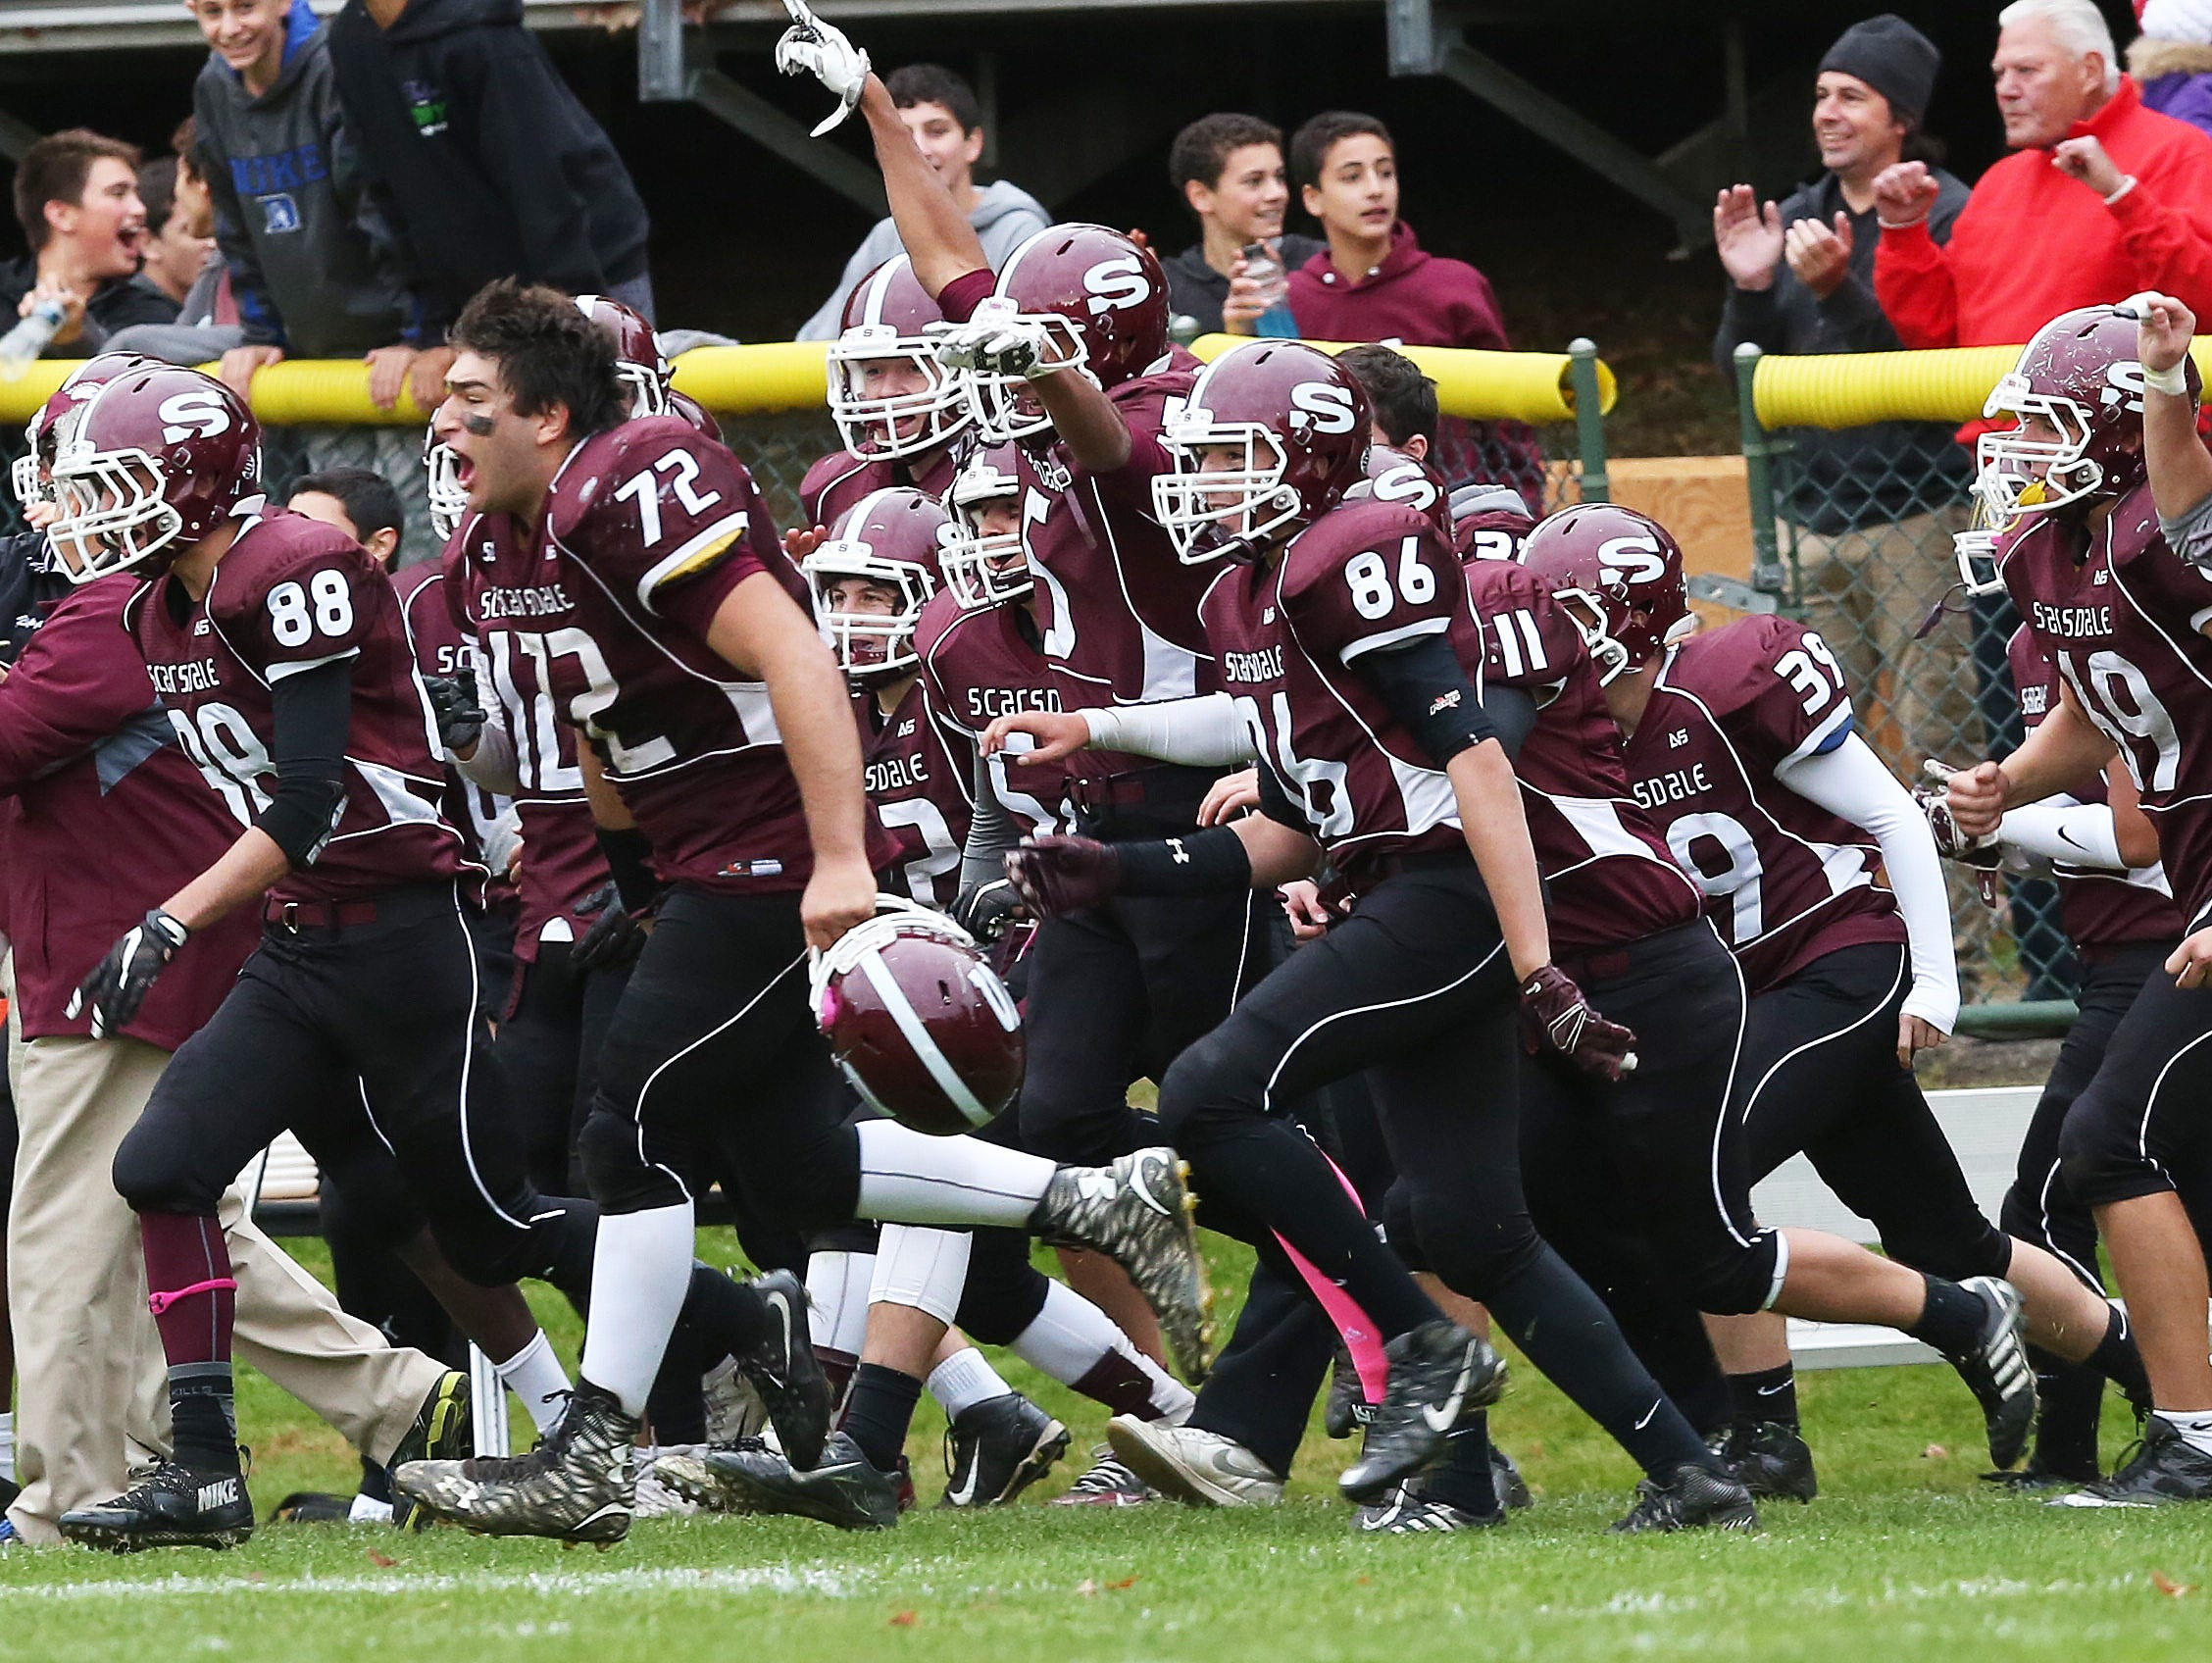 Scarsdale defeated Mahopac 33-28 in a boys football playoff game at Scarsdale High School Oct. 24, 2015.